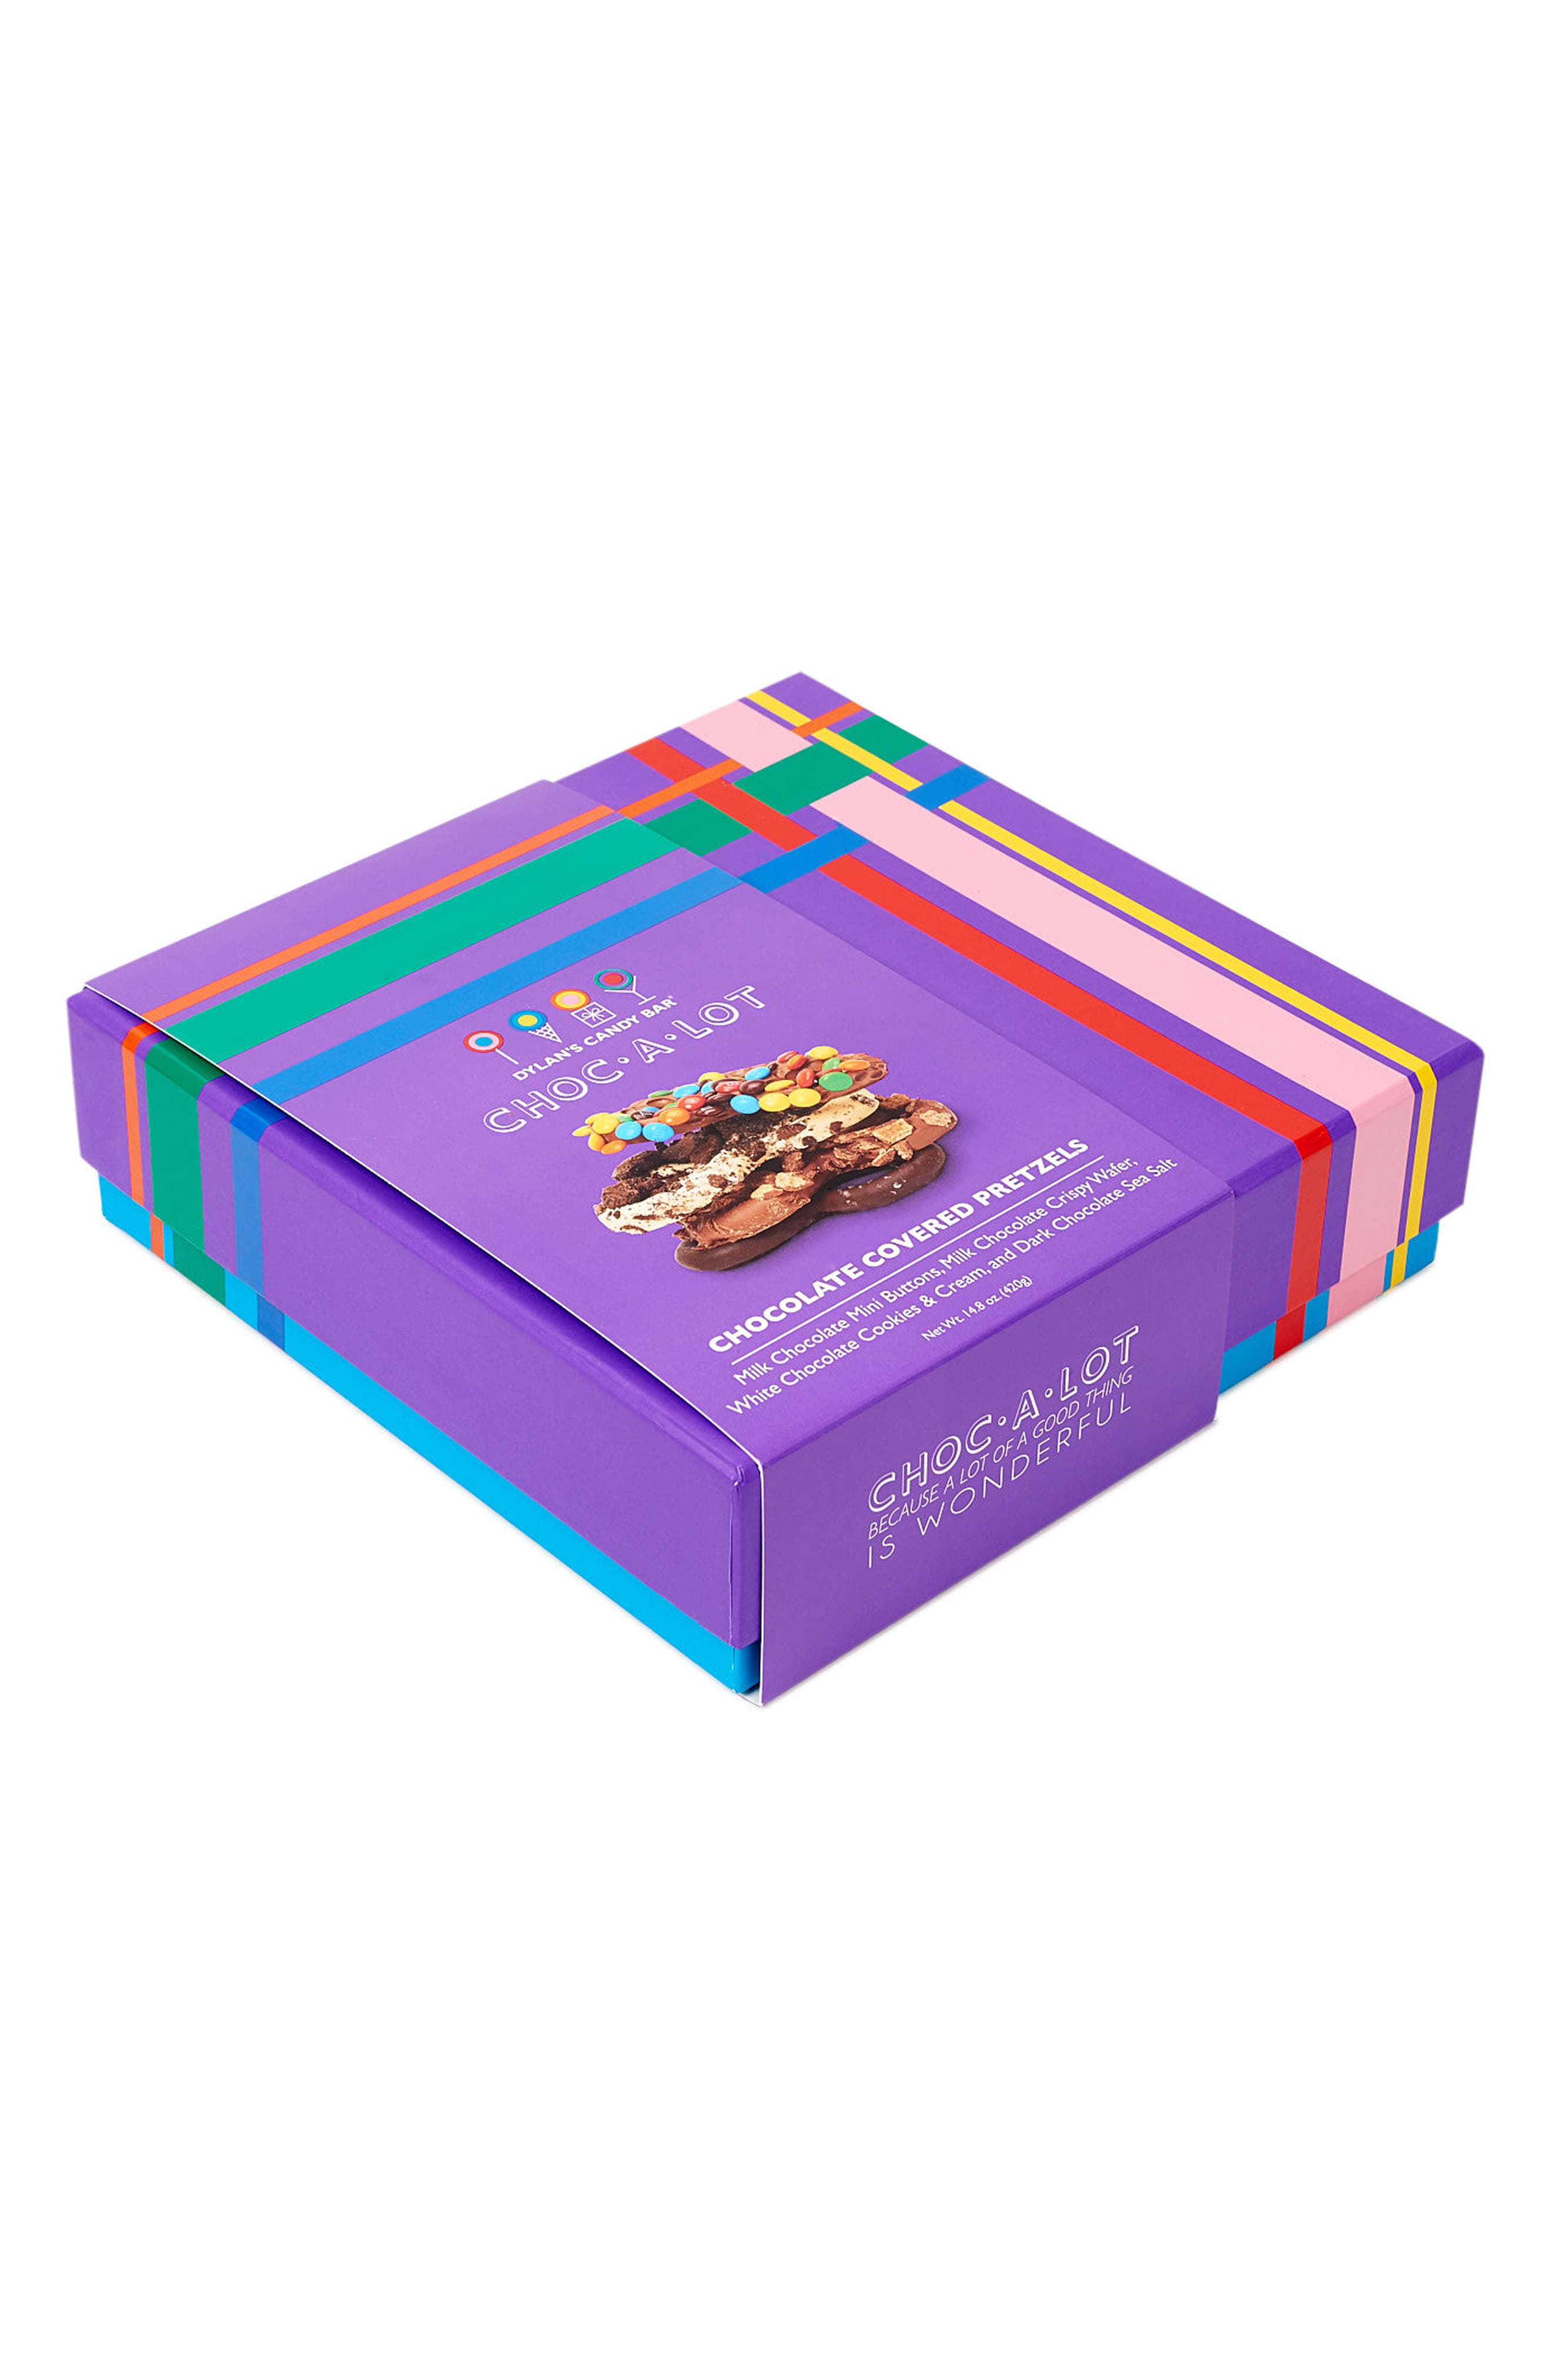 DYLAN'S CANDY BAR, Choc-A-Lot Chocolate Covered Pretzels, Alternate thumbnail 3, color, PURPLE